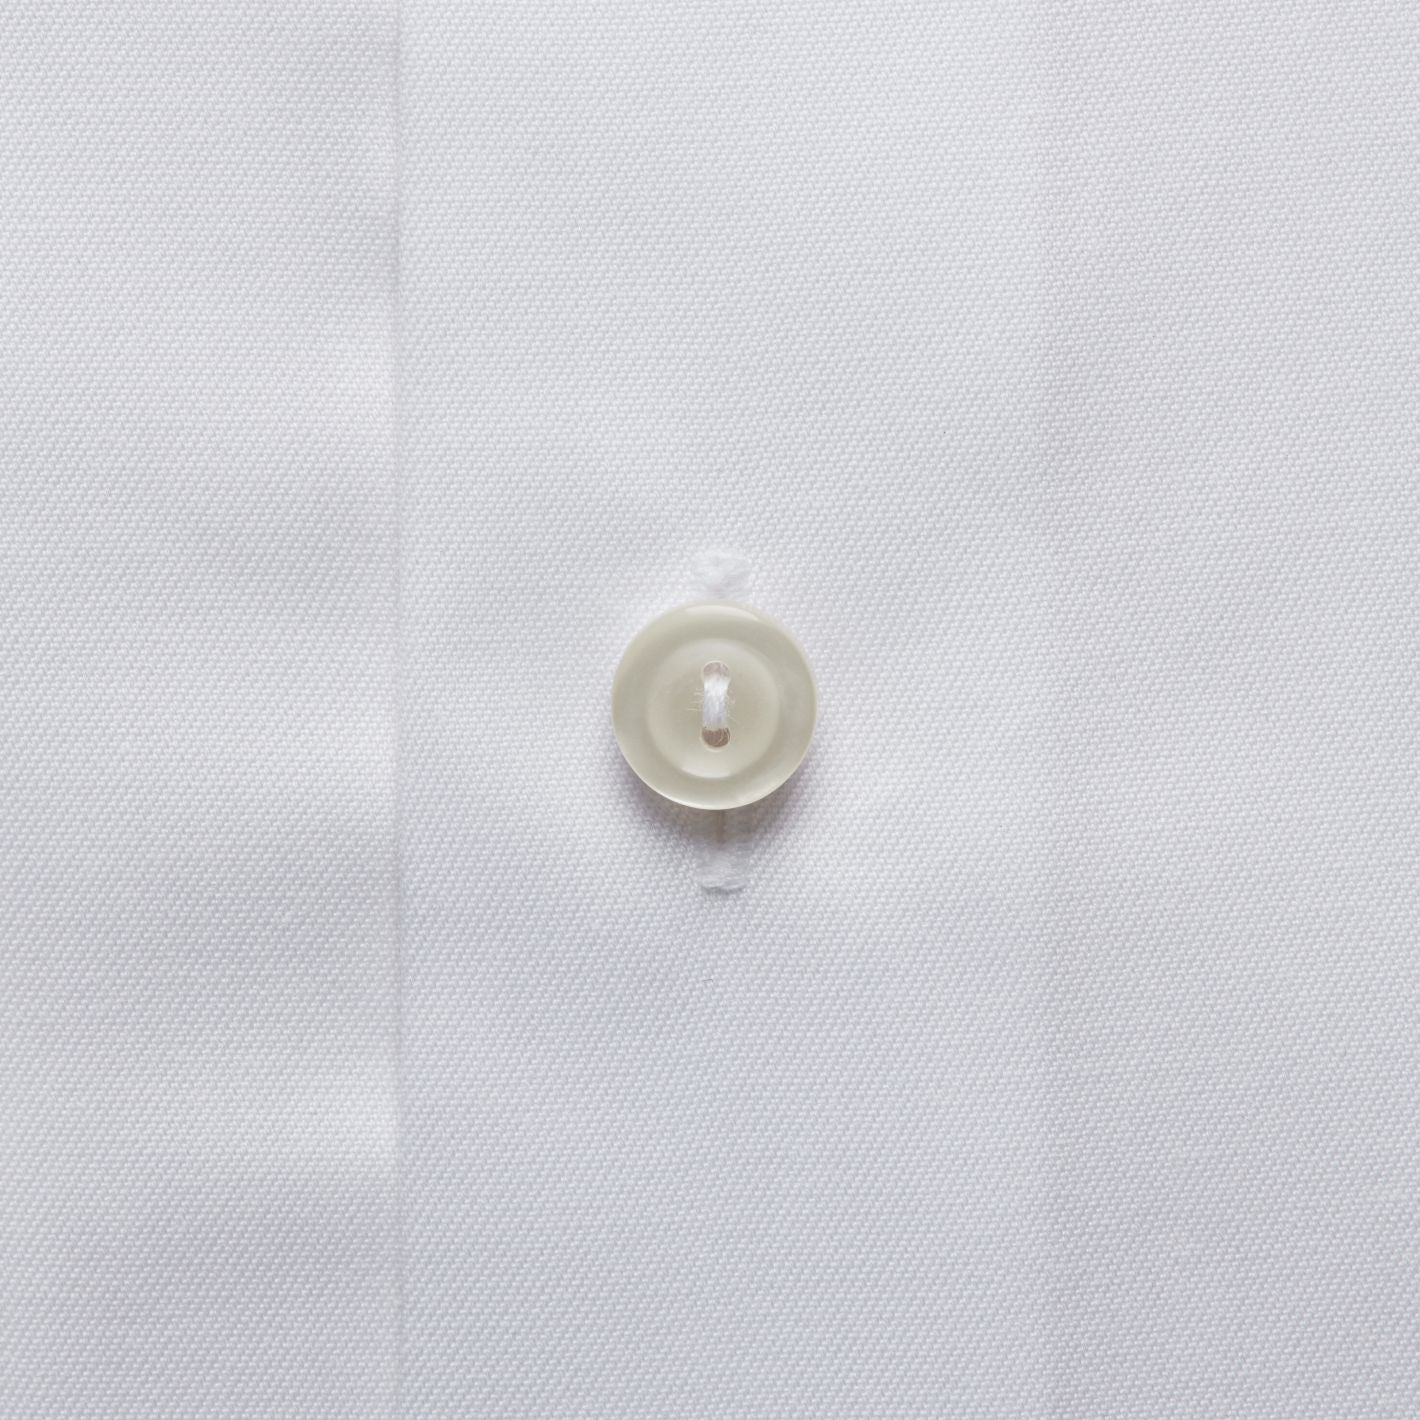 Premium quality formal men's shirt signature twill in white color